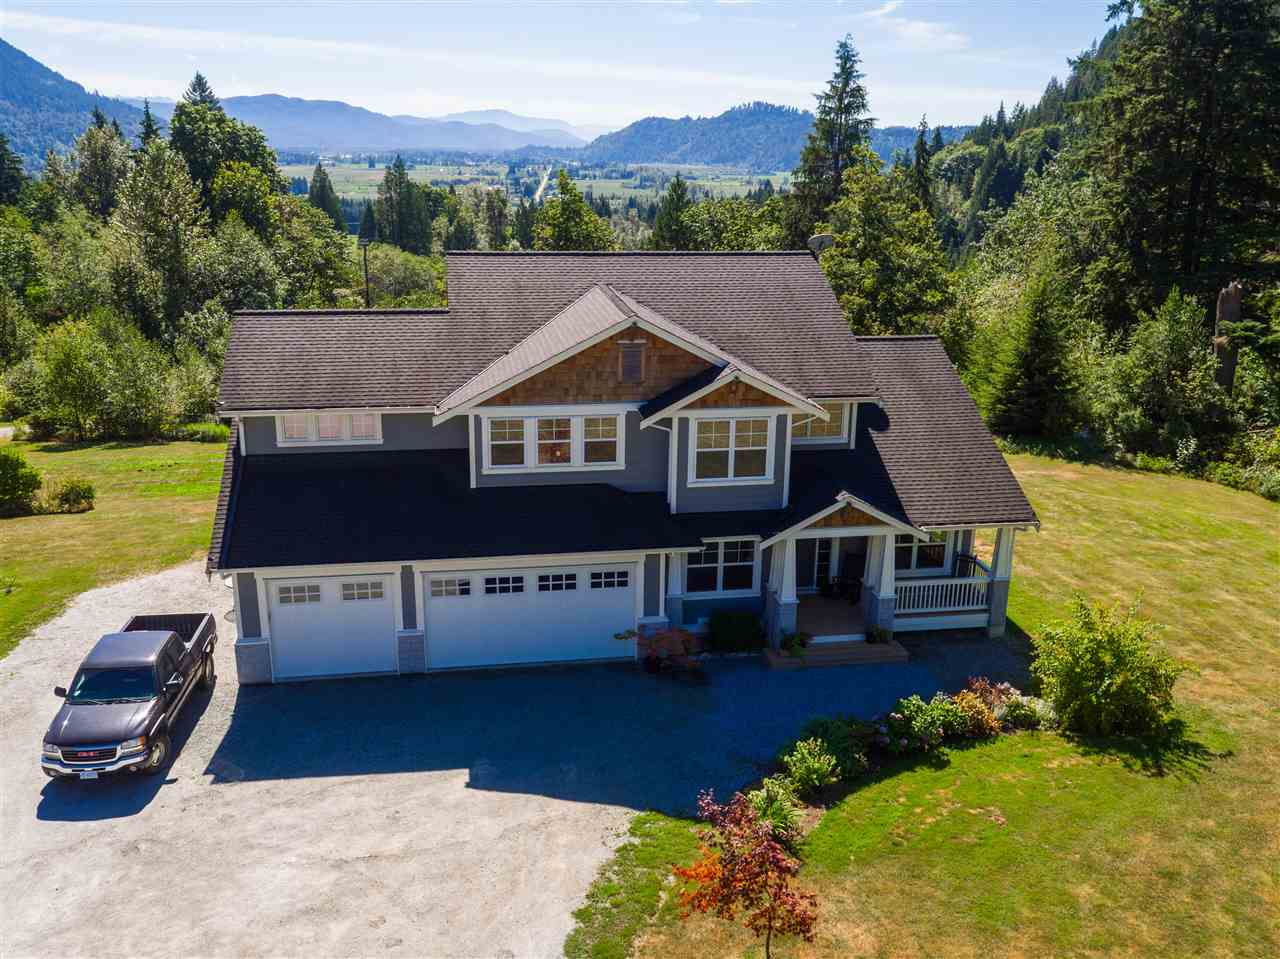 Beautiful custom built family home on 38.8 acres with an incredible view of mountains out each window. This home features solid scraped hardwood flooring, oversized windows, south and west facing wrap around decking, very efficiently heated and cooled via heat pump, on demand hot water and back up generator just in case. The bright open kitchen has a great eating island a generous pantry all with stainless appliances. The land is double zoned and partially in the ALR which results in ridiculously low property taxes. The endless natural water spring provides you with possibly the best drinking water anywhere. Just imagine the trails or camps you could make on the treed back 20 plus acres, or start a Xmas tree or blueberry farm.